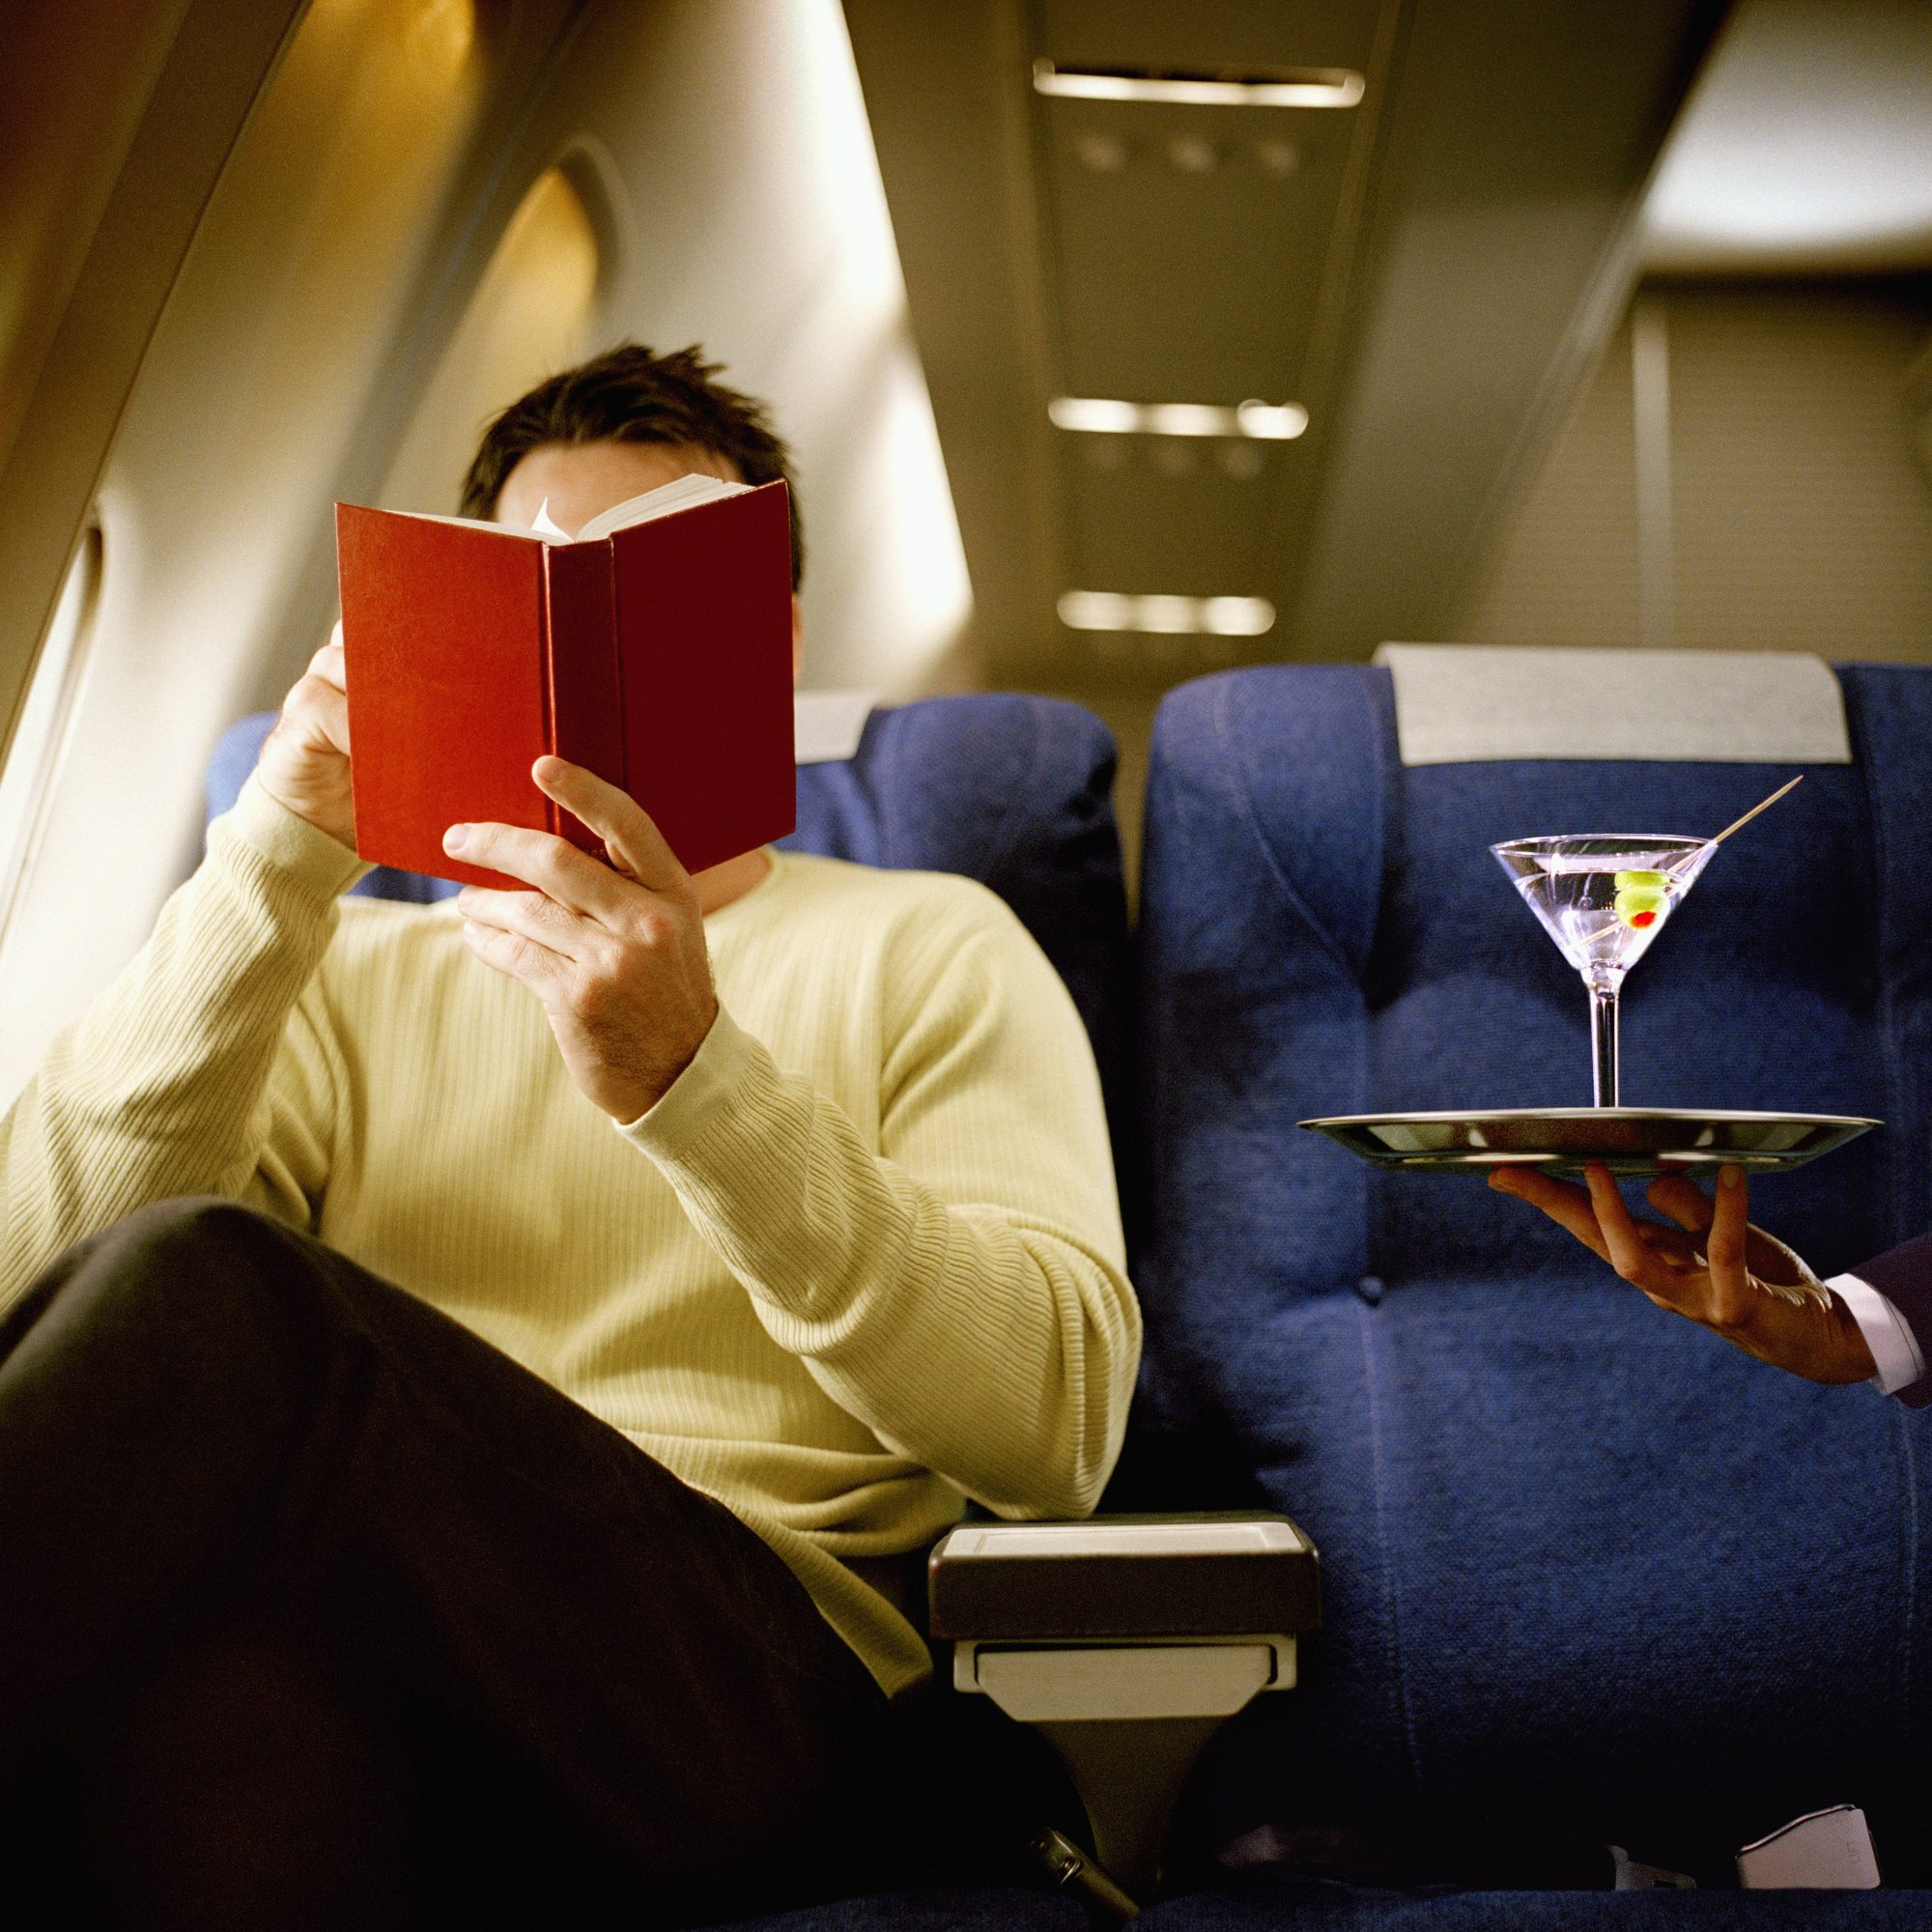 Man reading book, being served martini, in first class on airliner